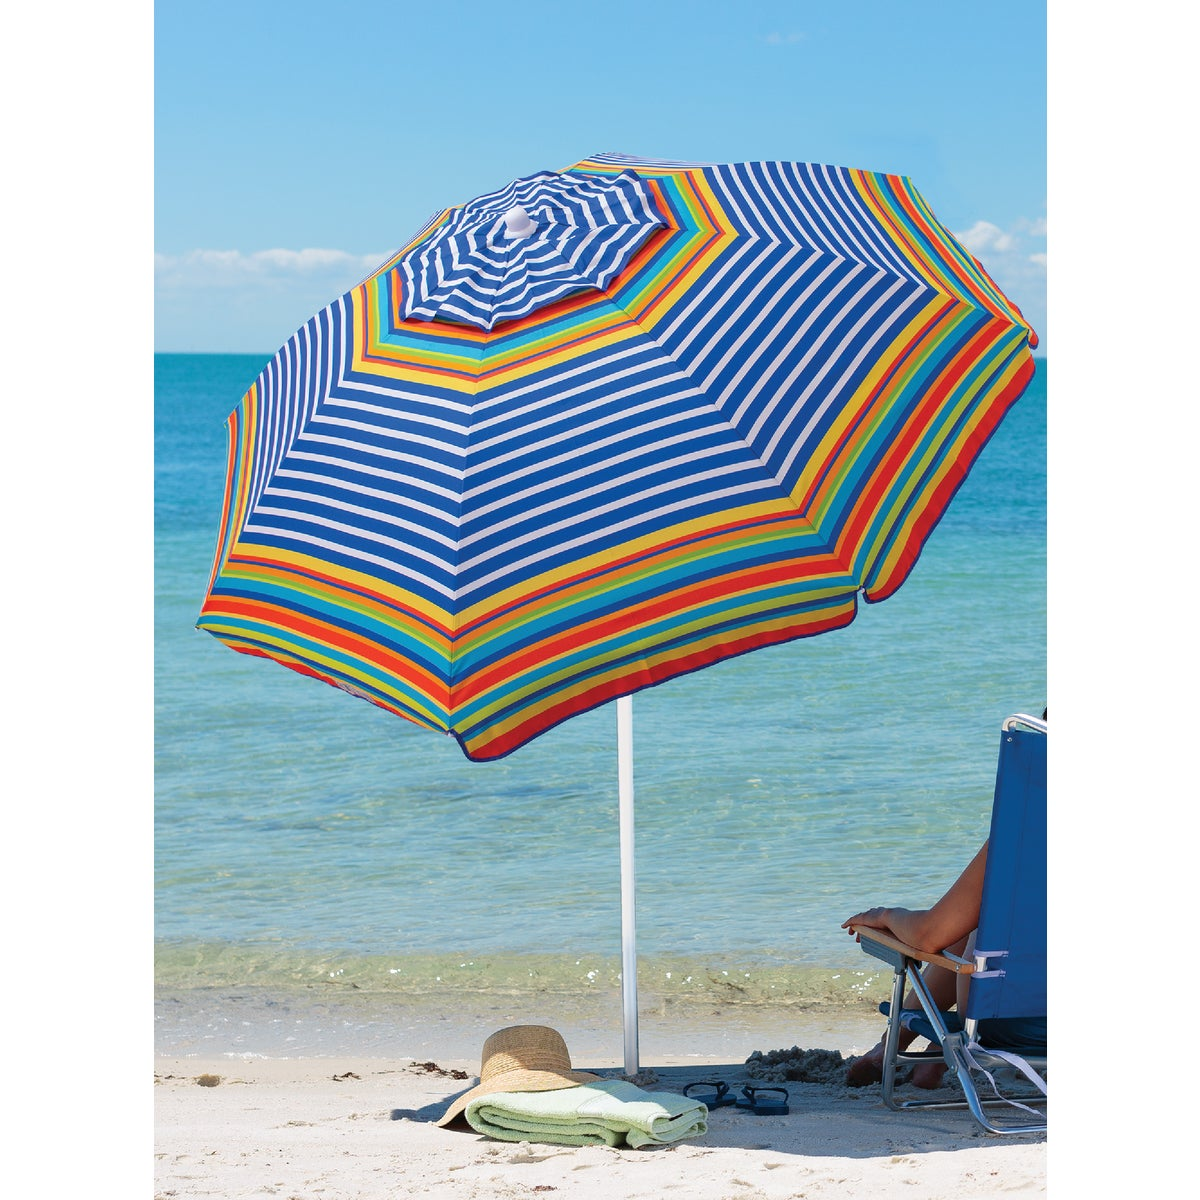 6' BEACH UMBRELLA - UB71-149 by Rio Brands  Ningbo1